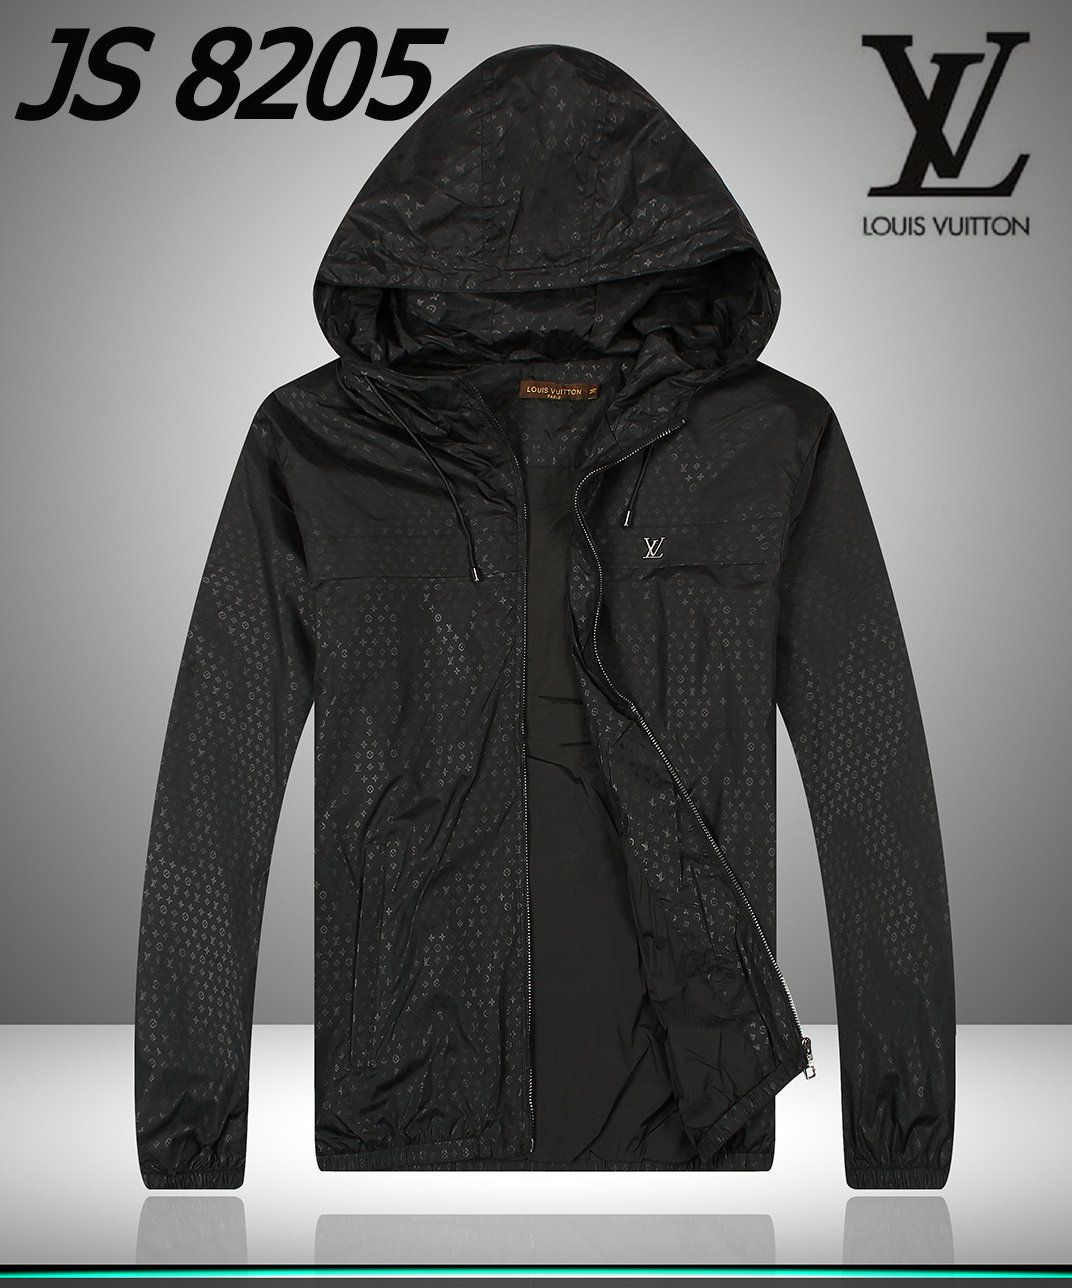 louis vuitton jackets for men Google Search Jackets